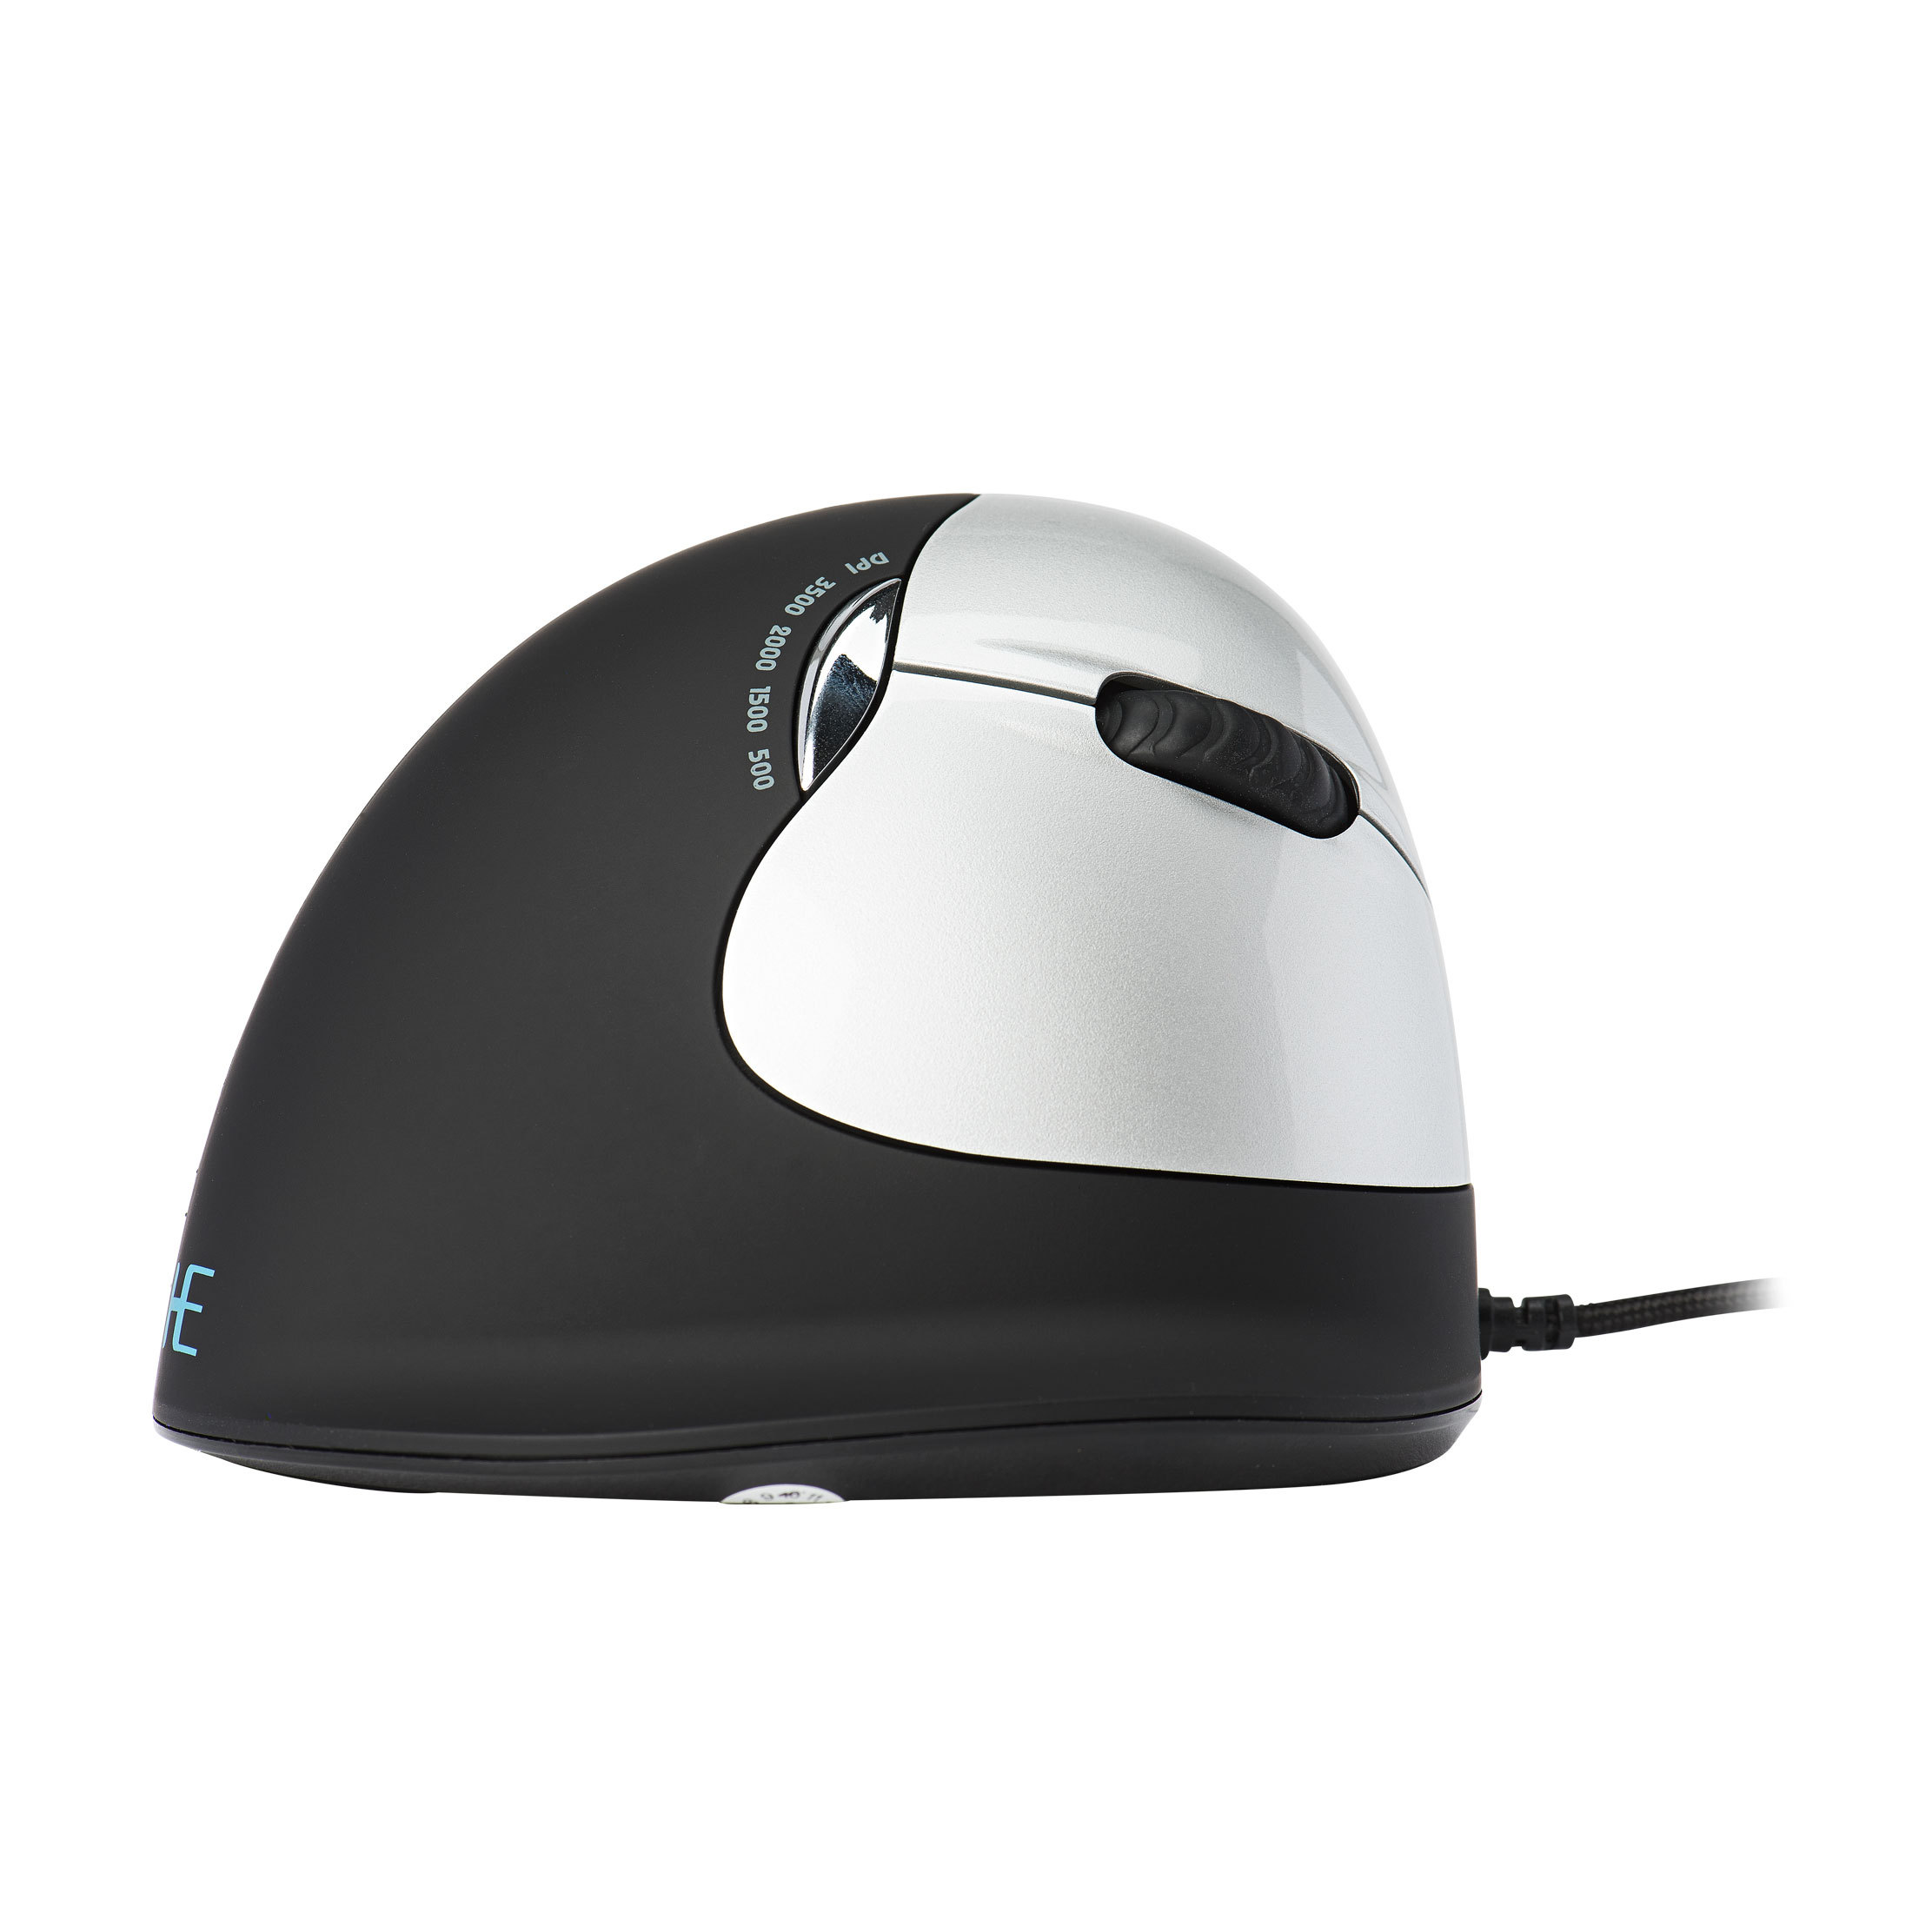 R-Go HE Break Mouse, Ergonomic mouse, Anti-RSI software, Medium (Hand Size 165-185mm), Right Handed, Wired - 7